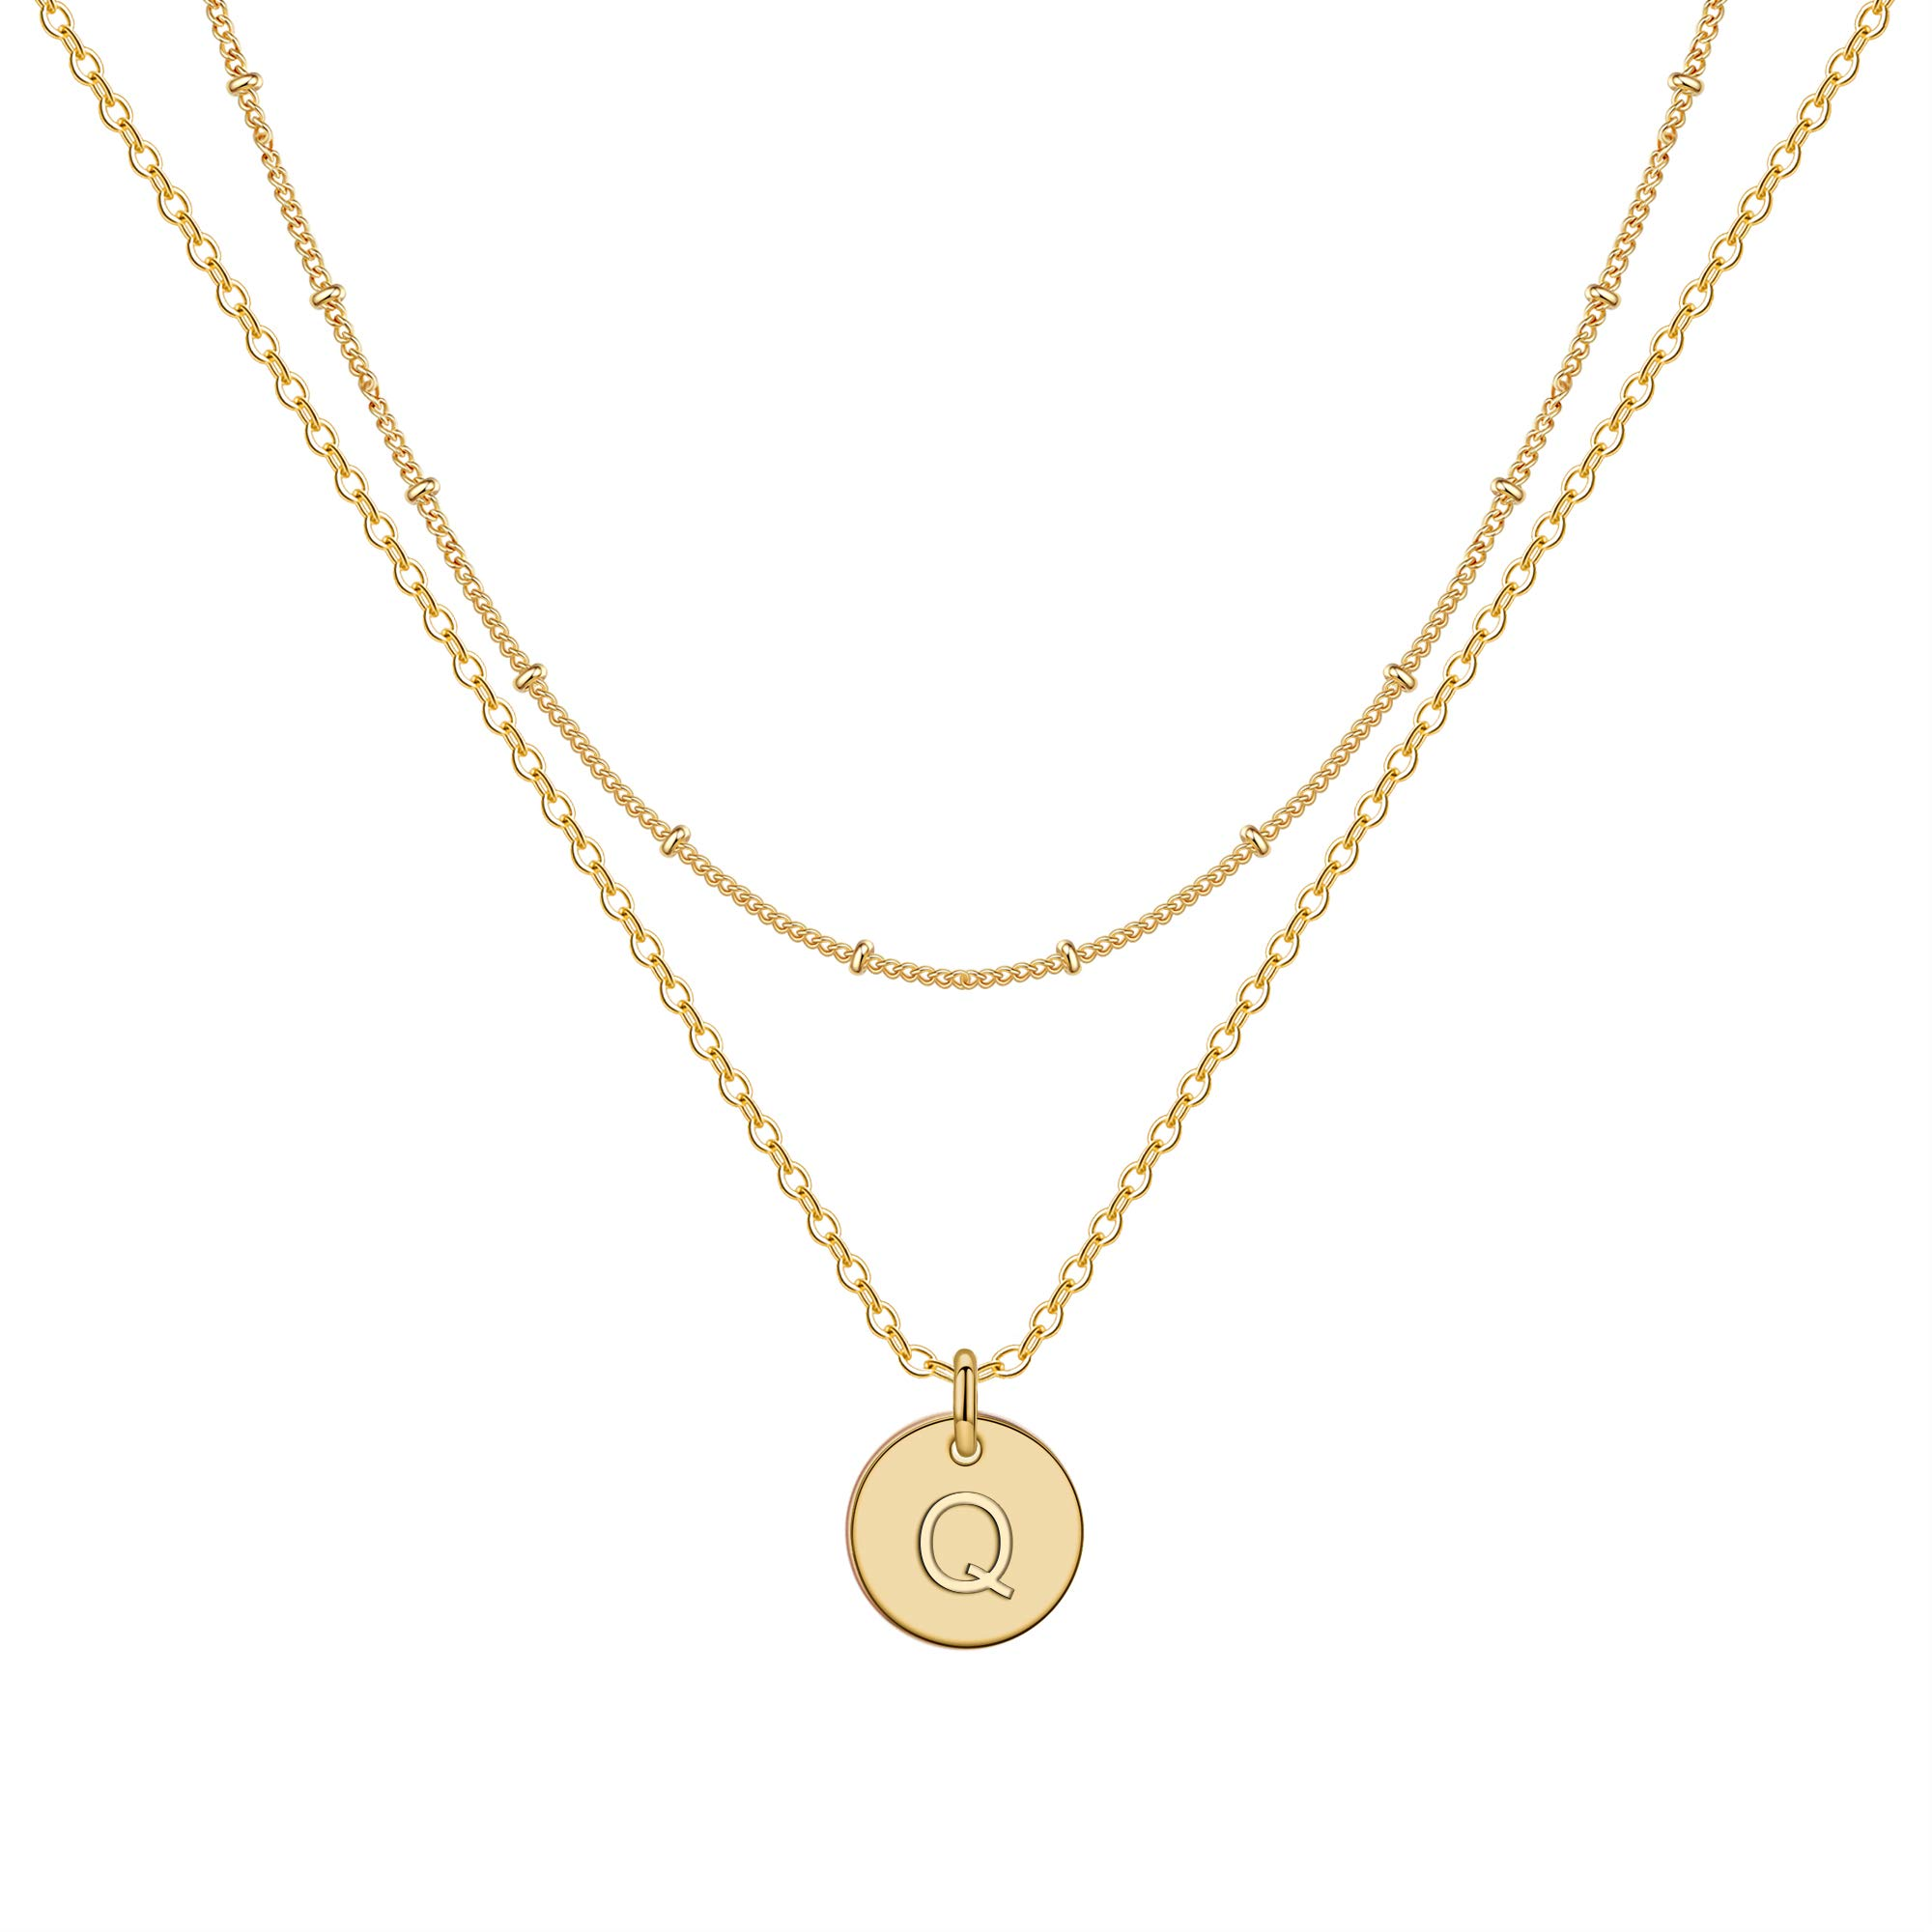 IEFWELL Gold Initial Necklaces for Women,14K Gold Filled Double Side Engraved Hammered Gold Coin Necklaces for Women Initial Necklace Layered Initial Necklaces for Women Teen Girl Jewelry